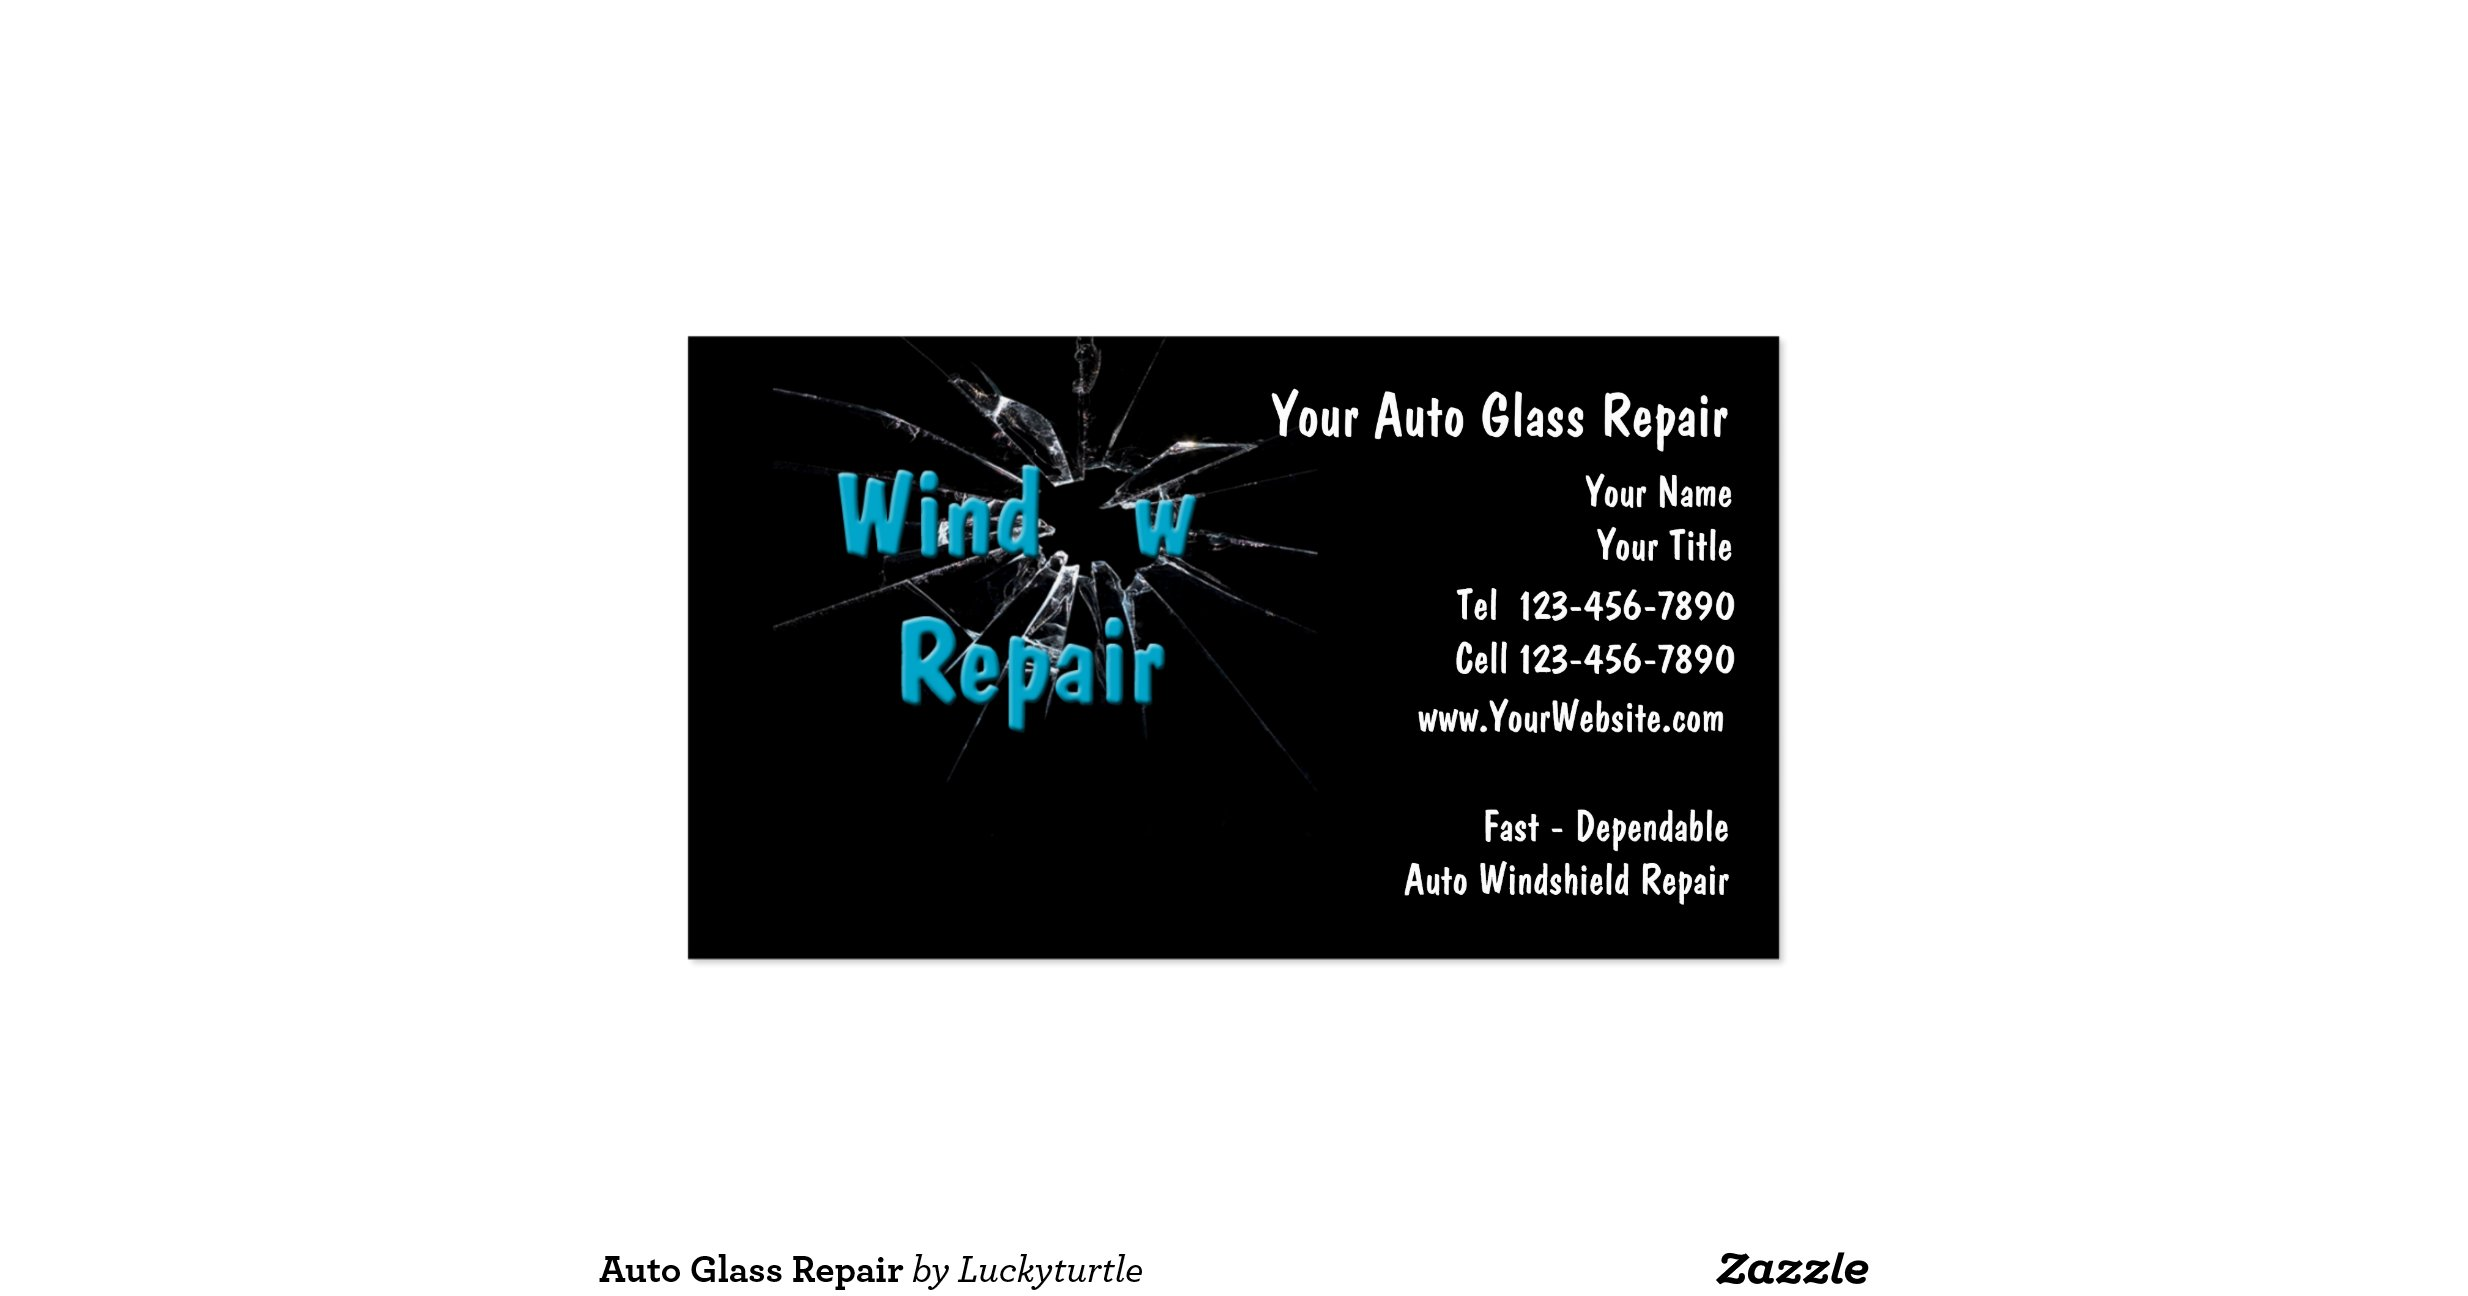 Starting an Auto Glass Retail Business